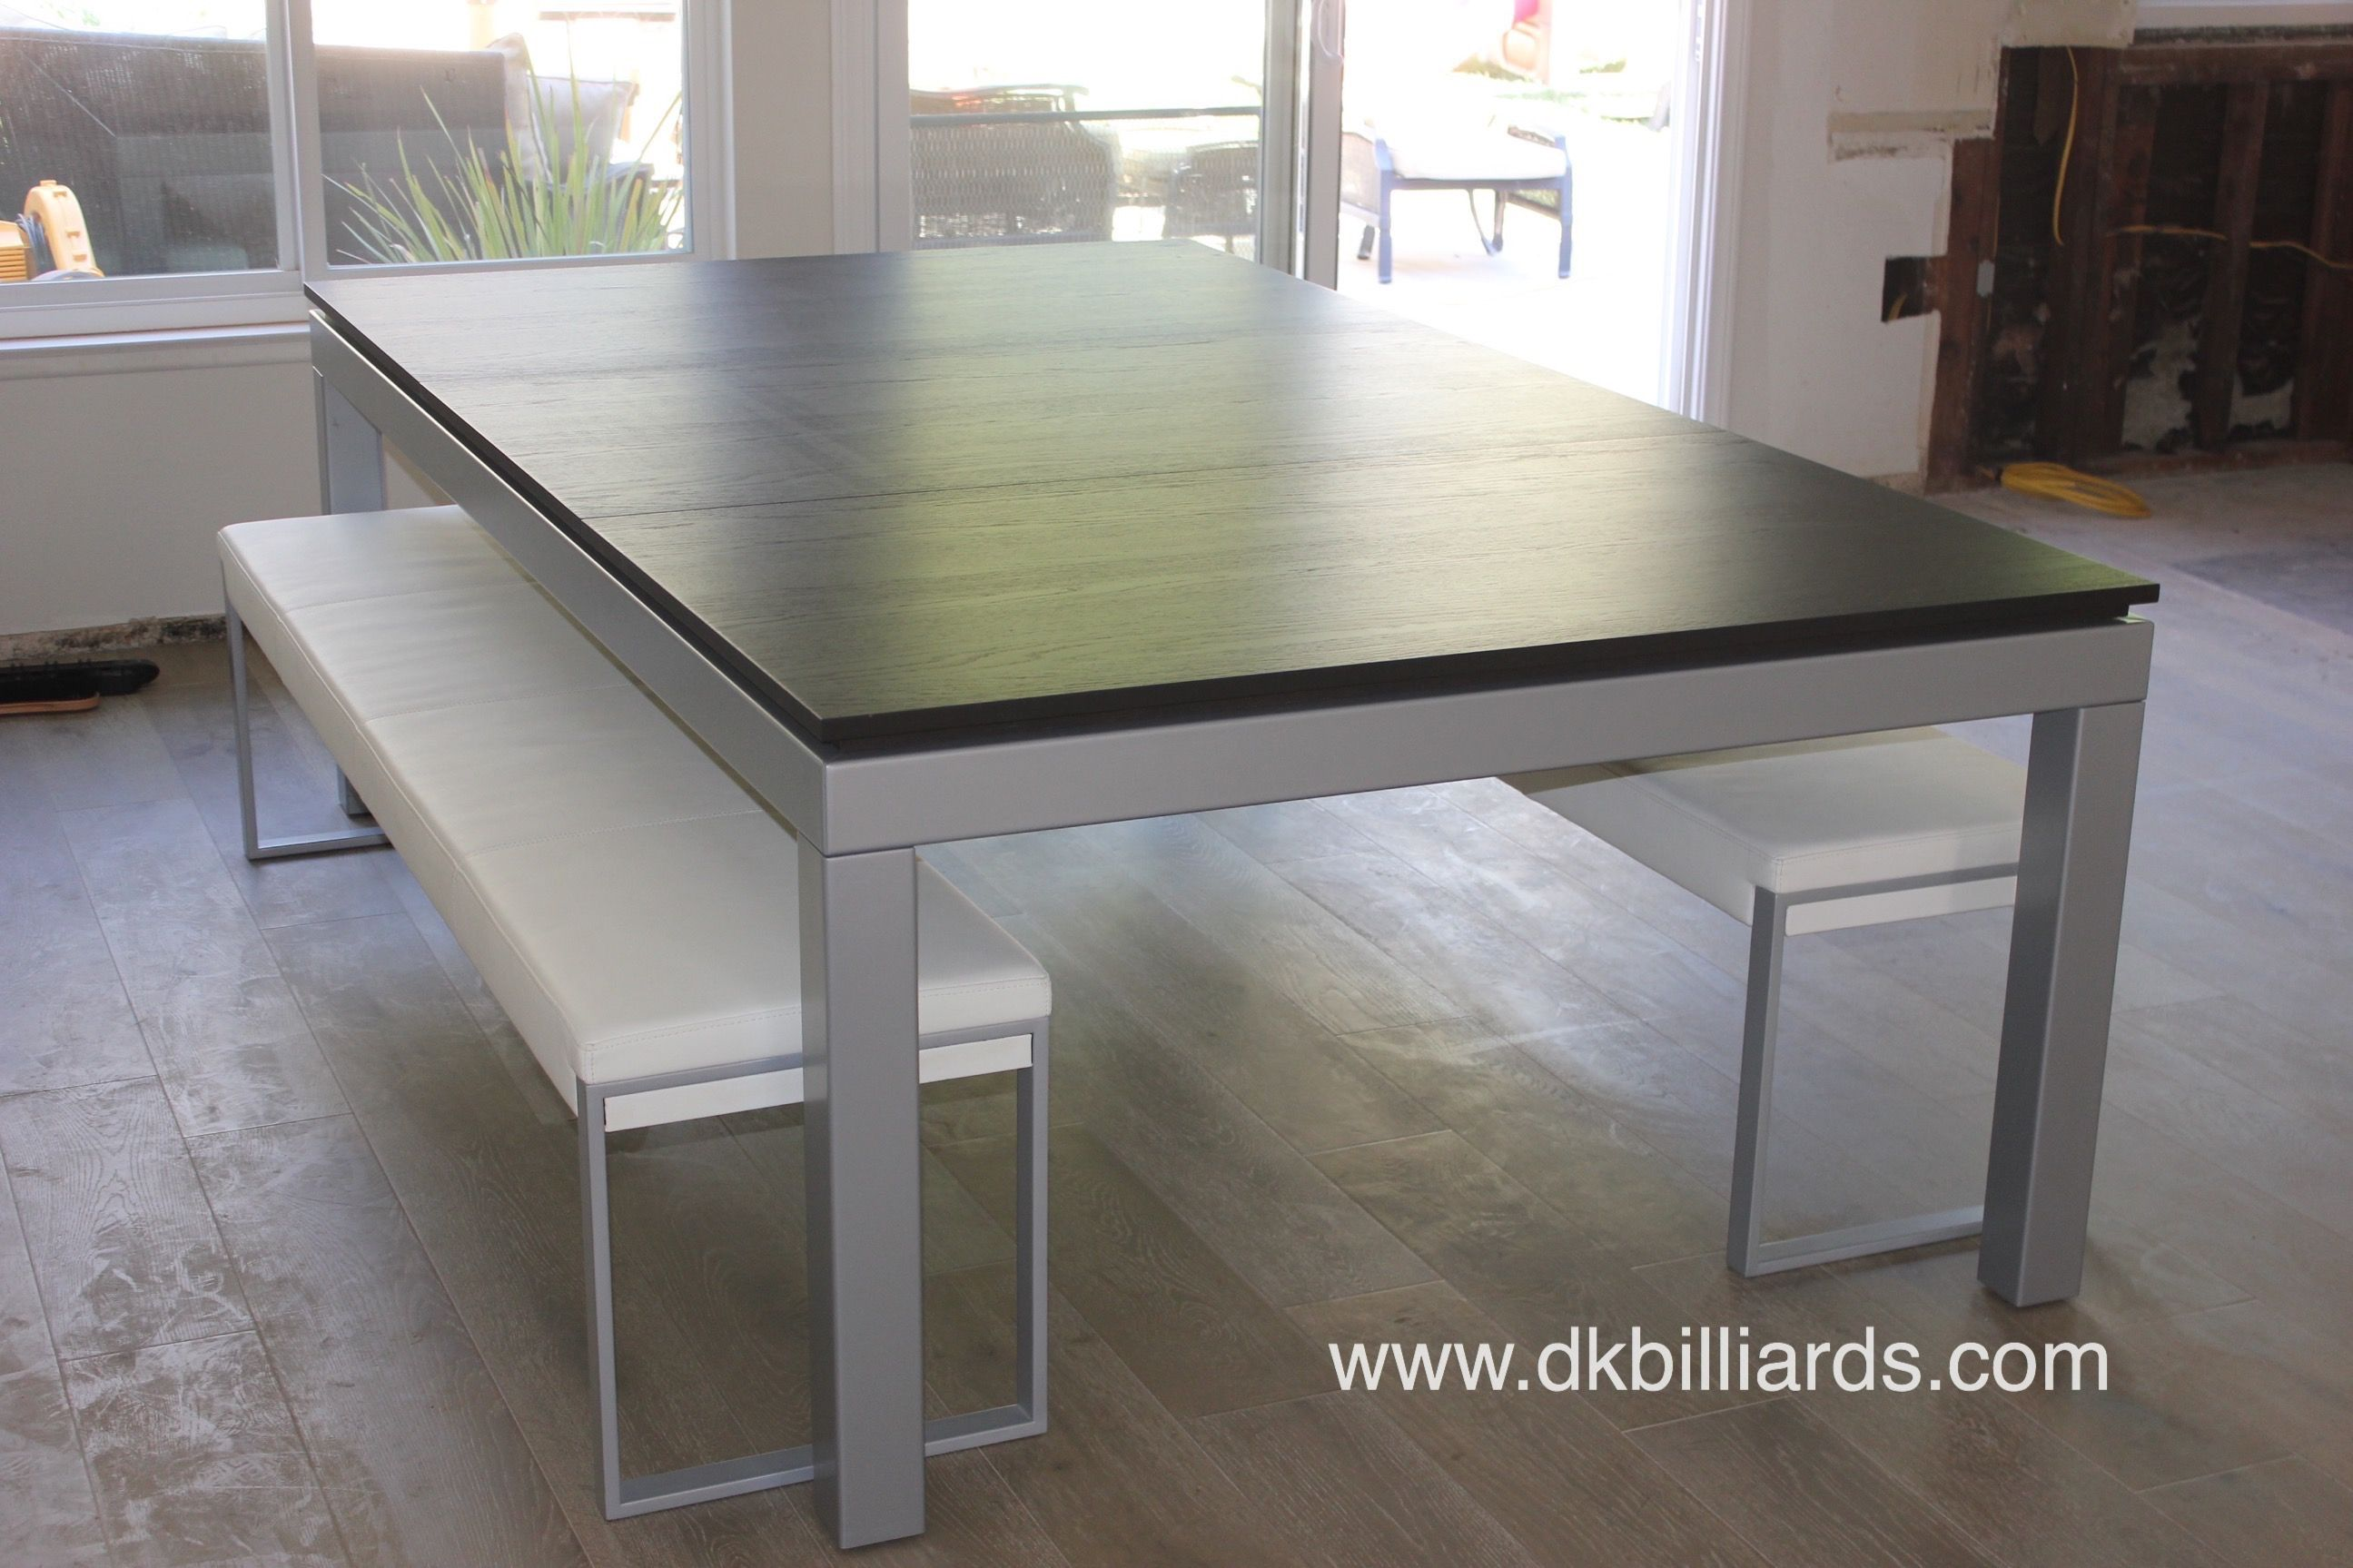 Things We Love About The Aramith Fusion Arch My Furniture - Aramith fusion pool table